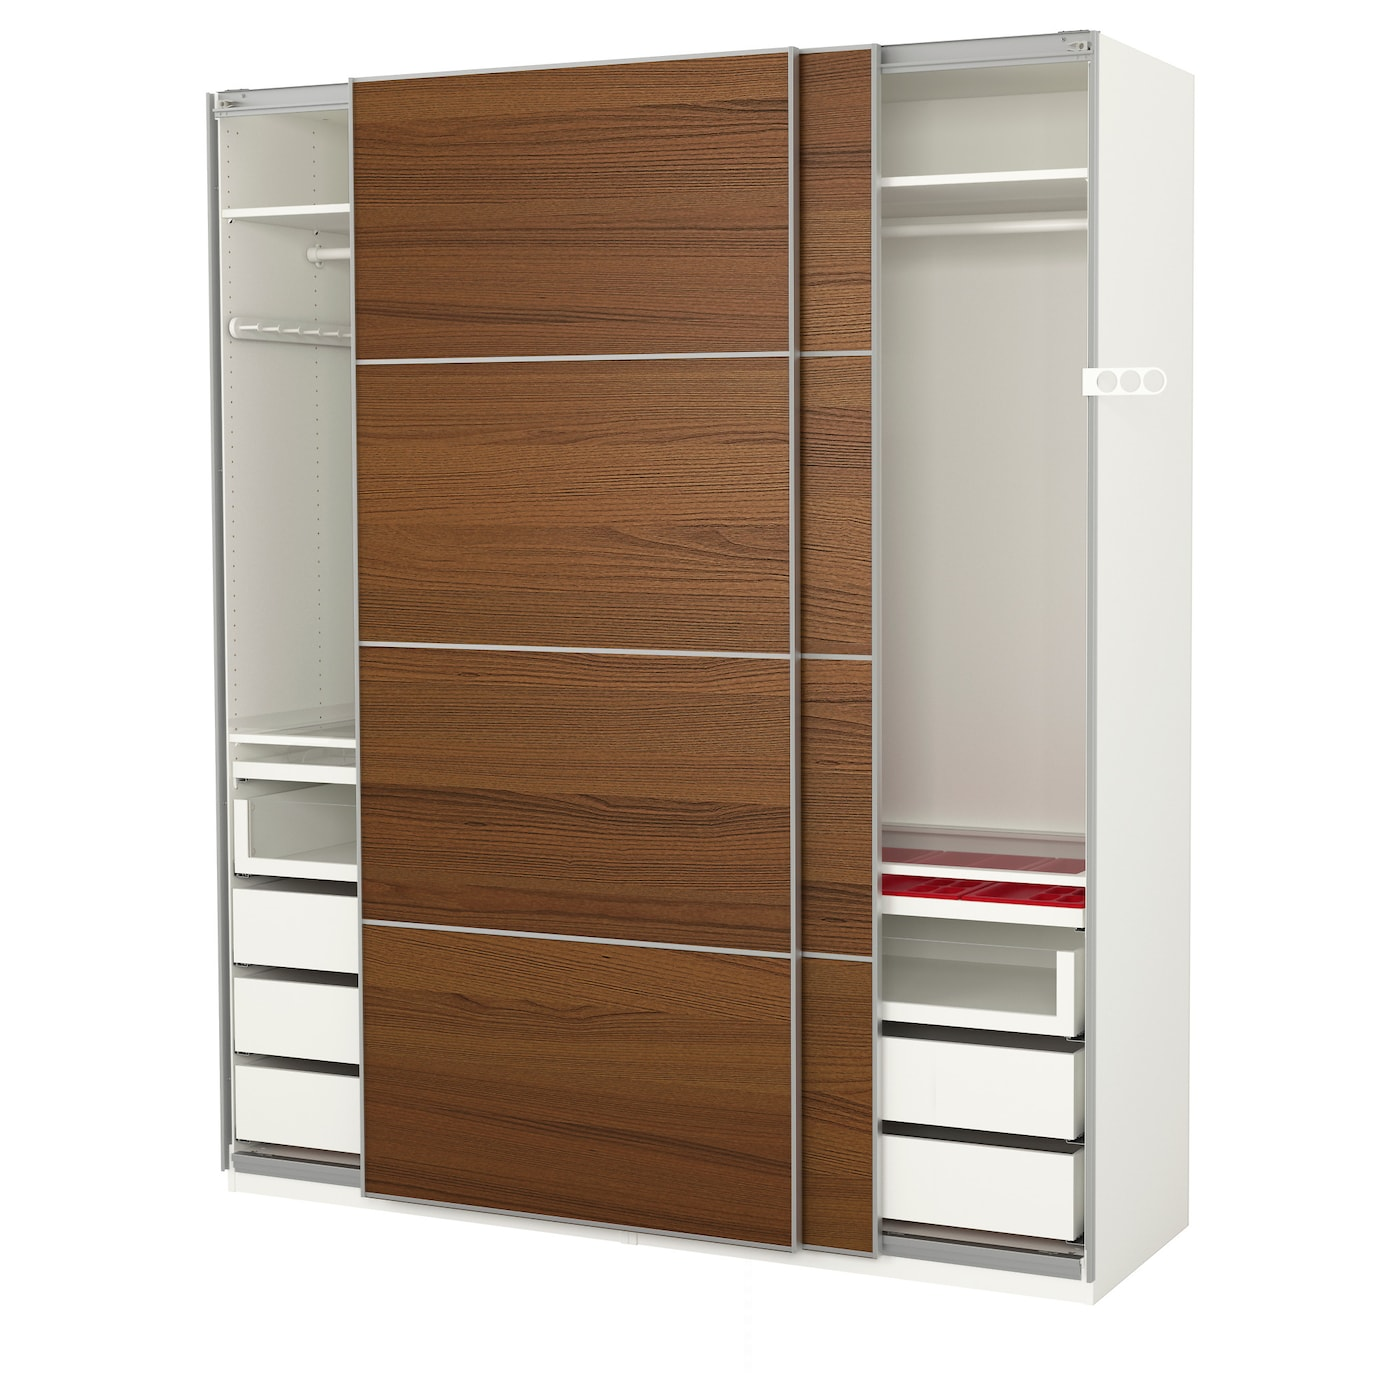 pax wardrobe white ilseng brown stained ash veneer. Black Bedroom Furniture Sets. Home Design Ideas